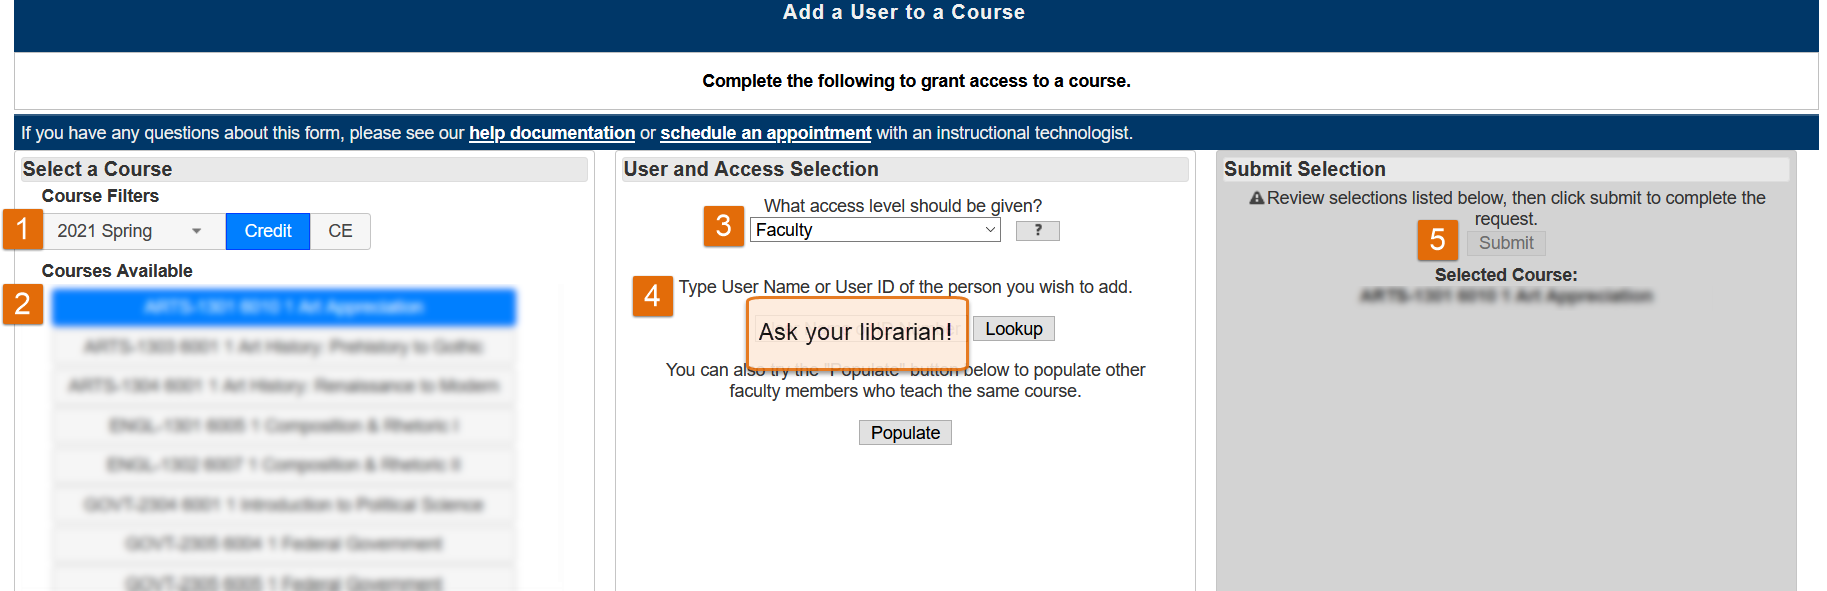 Select semester, then course. Choose a role. Enter user ID (get it from your librarian). Submit.